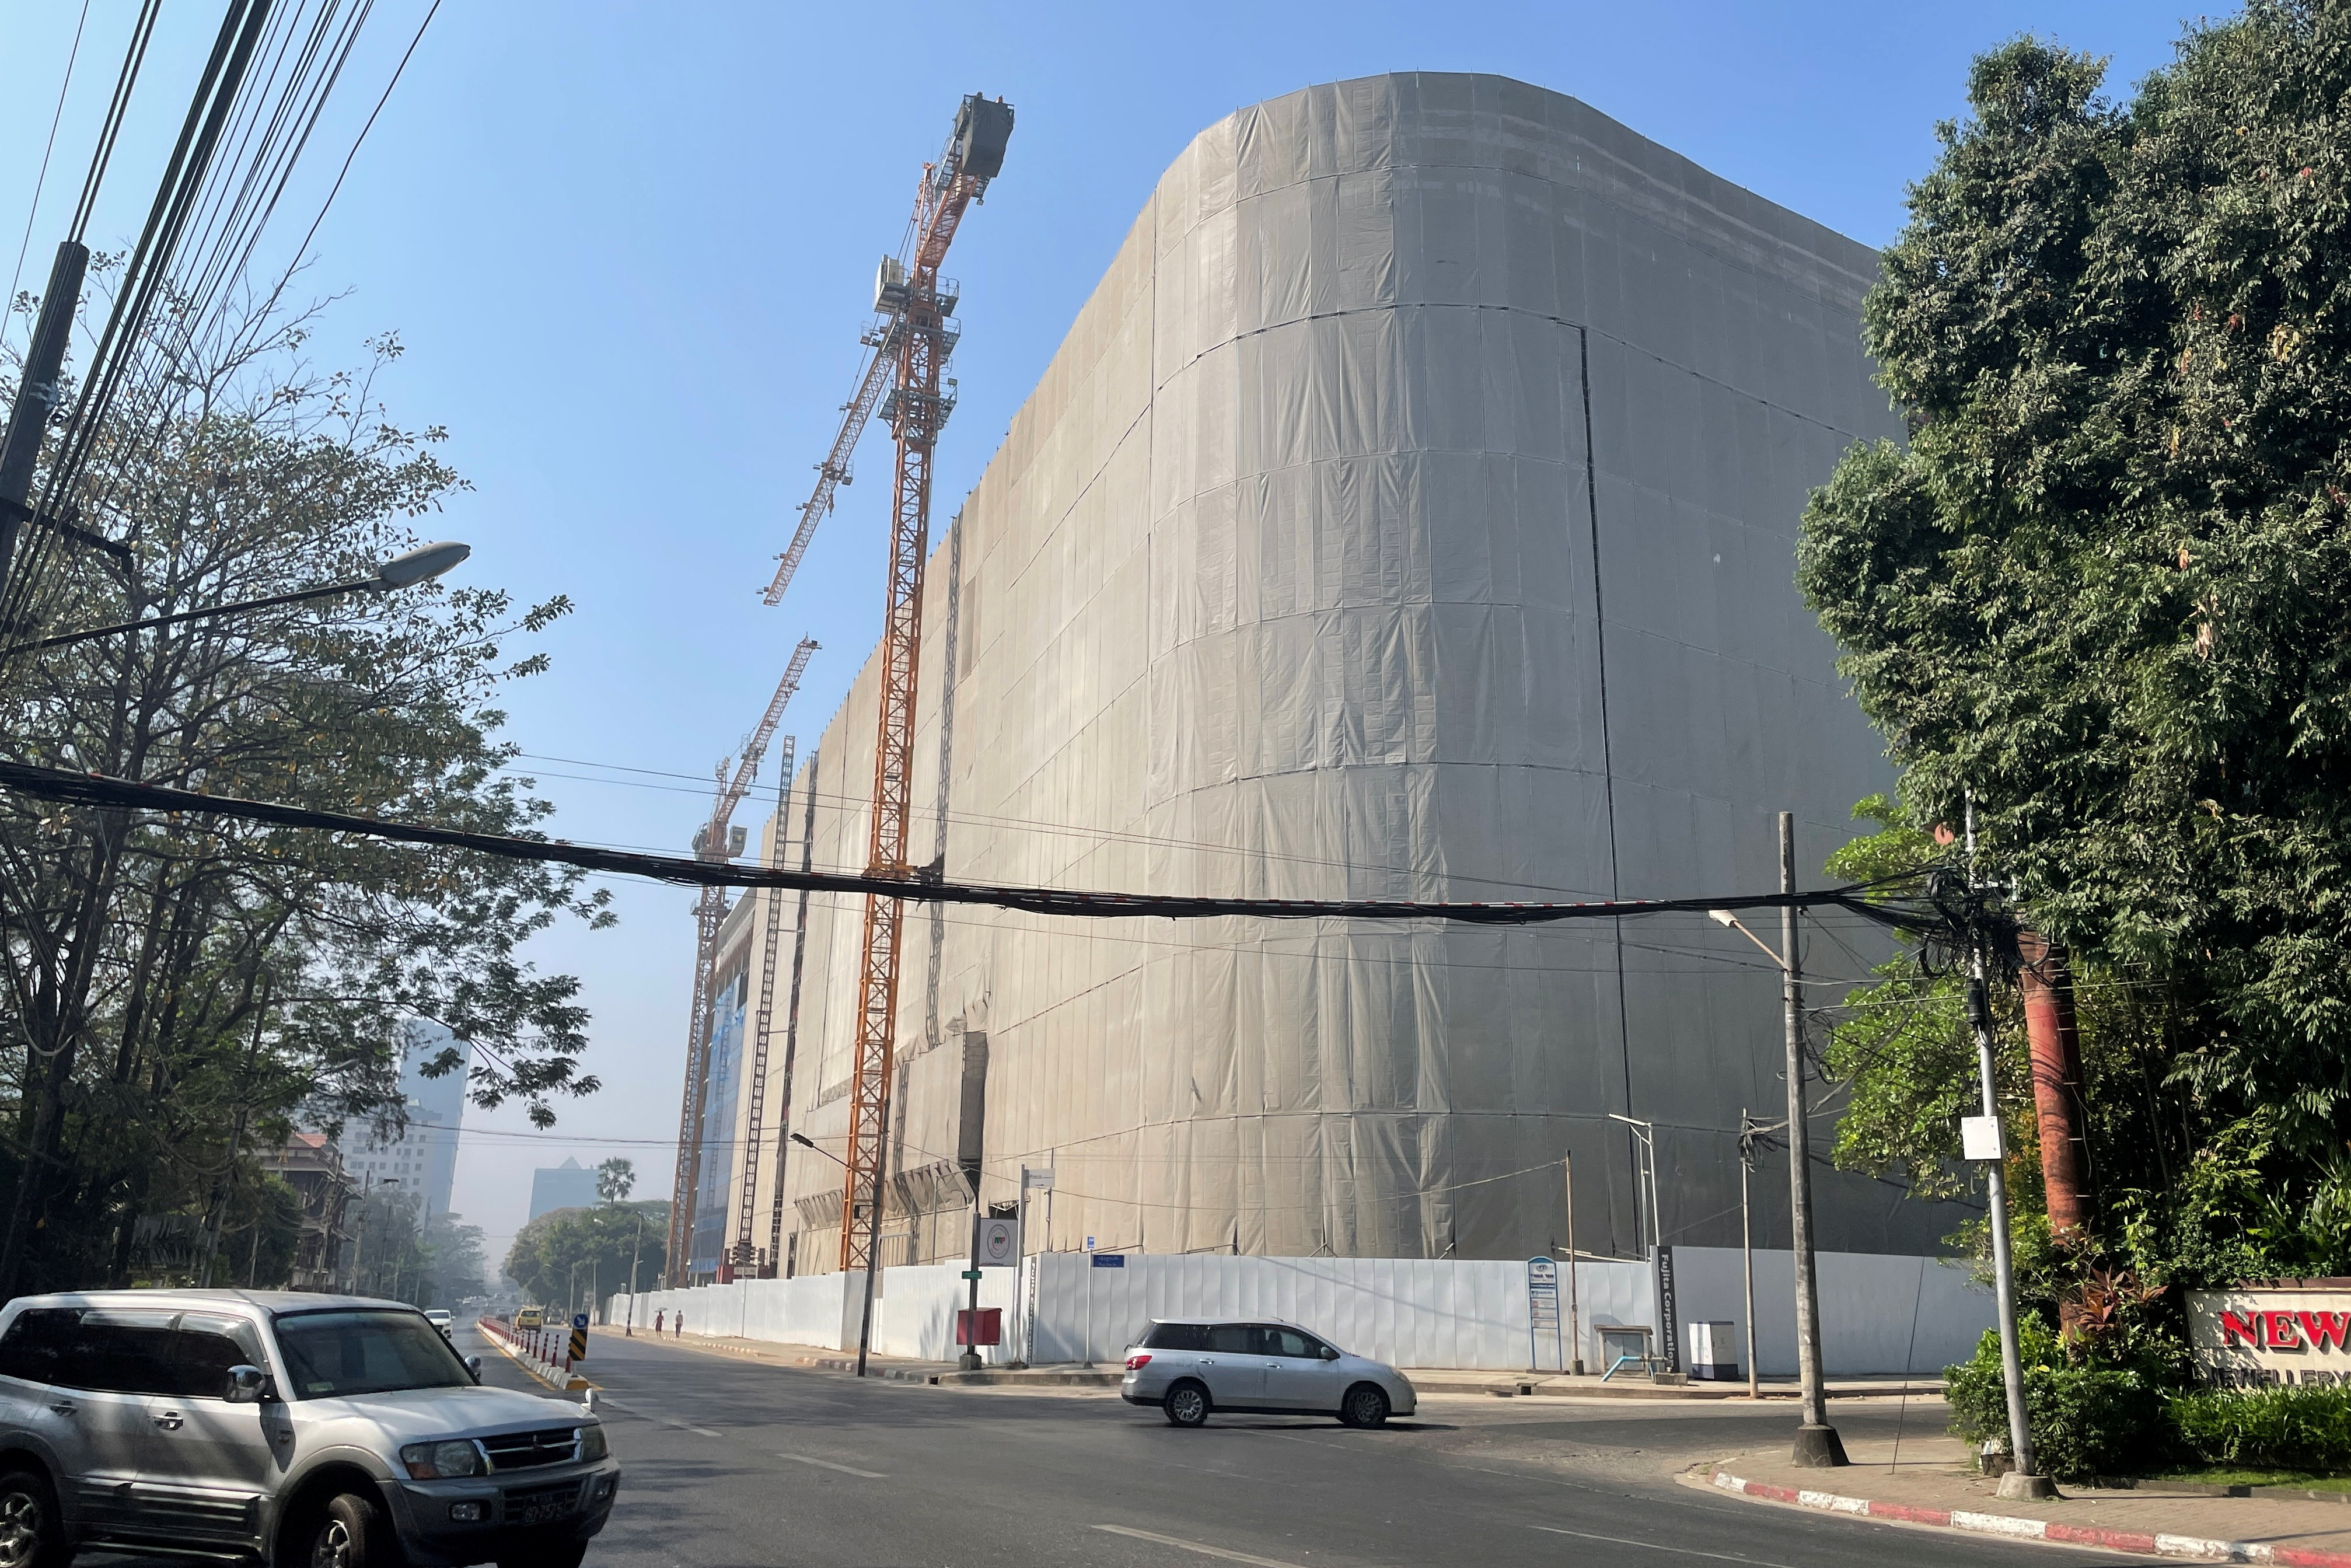 A construction site of a large-scale complex called Y Complex by Japanese firms is seen in the land that once housed the military museum in central  Yangon, Myanmar March 2, 2021. Picture taken March 2, 2021. REUTERS/Stringer